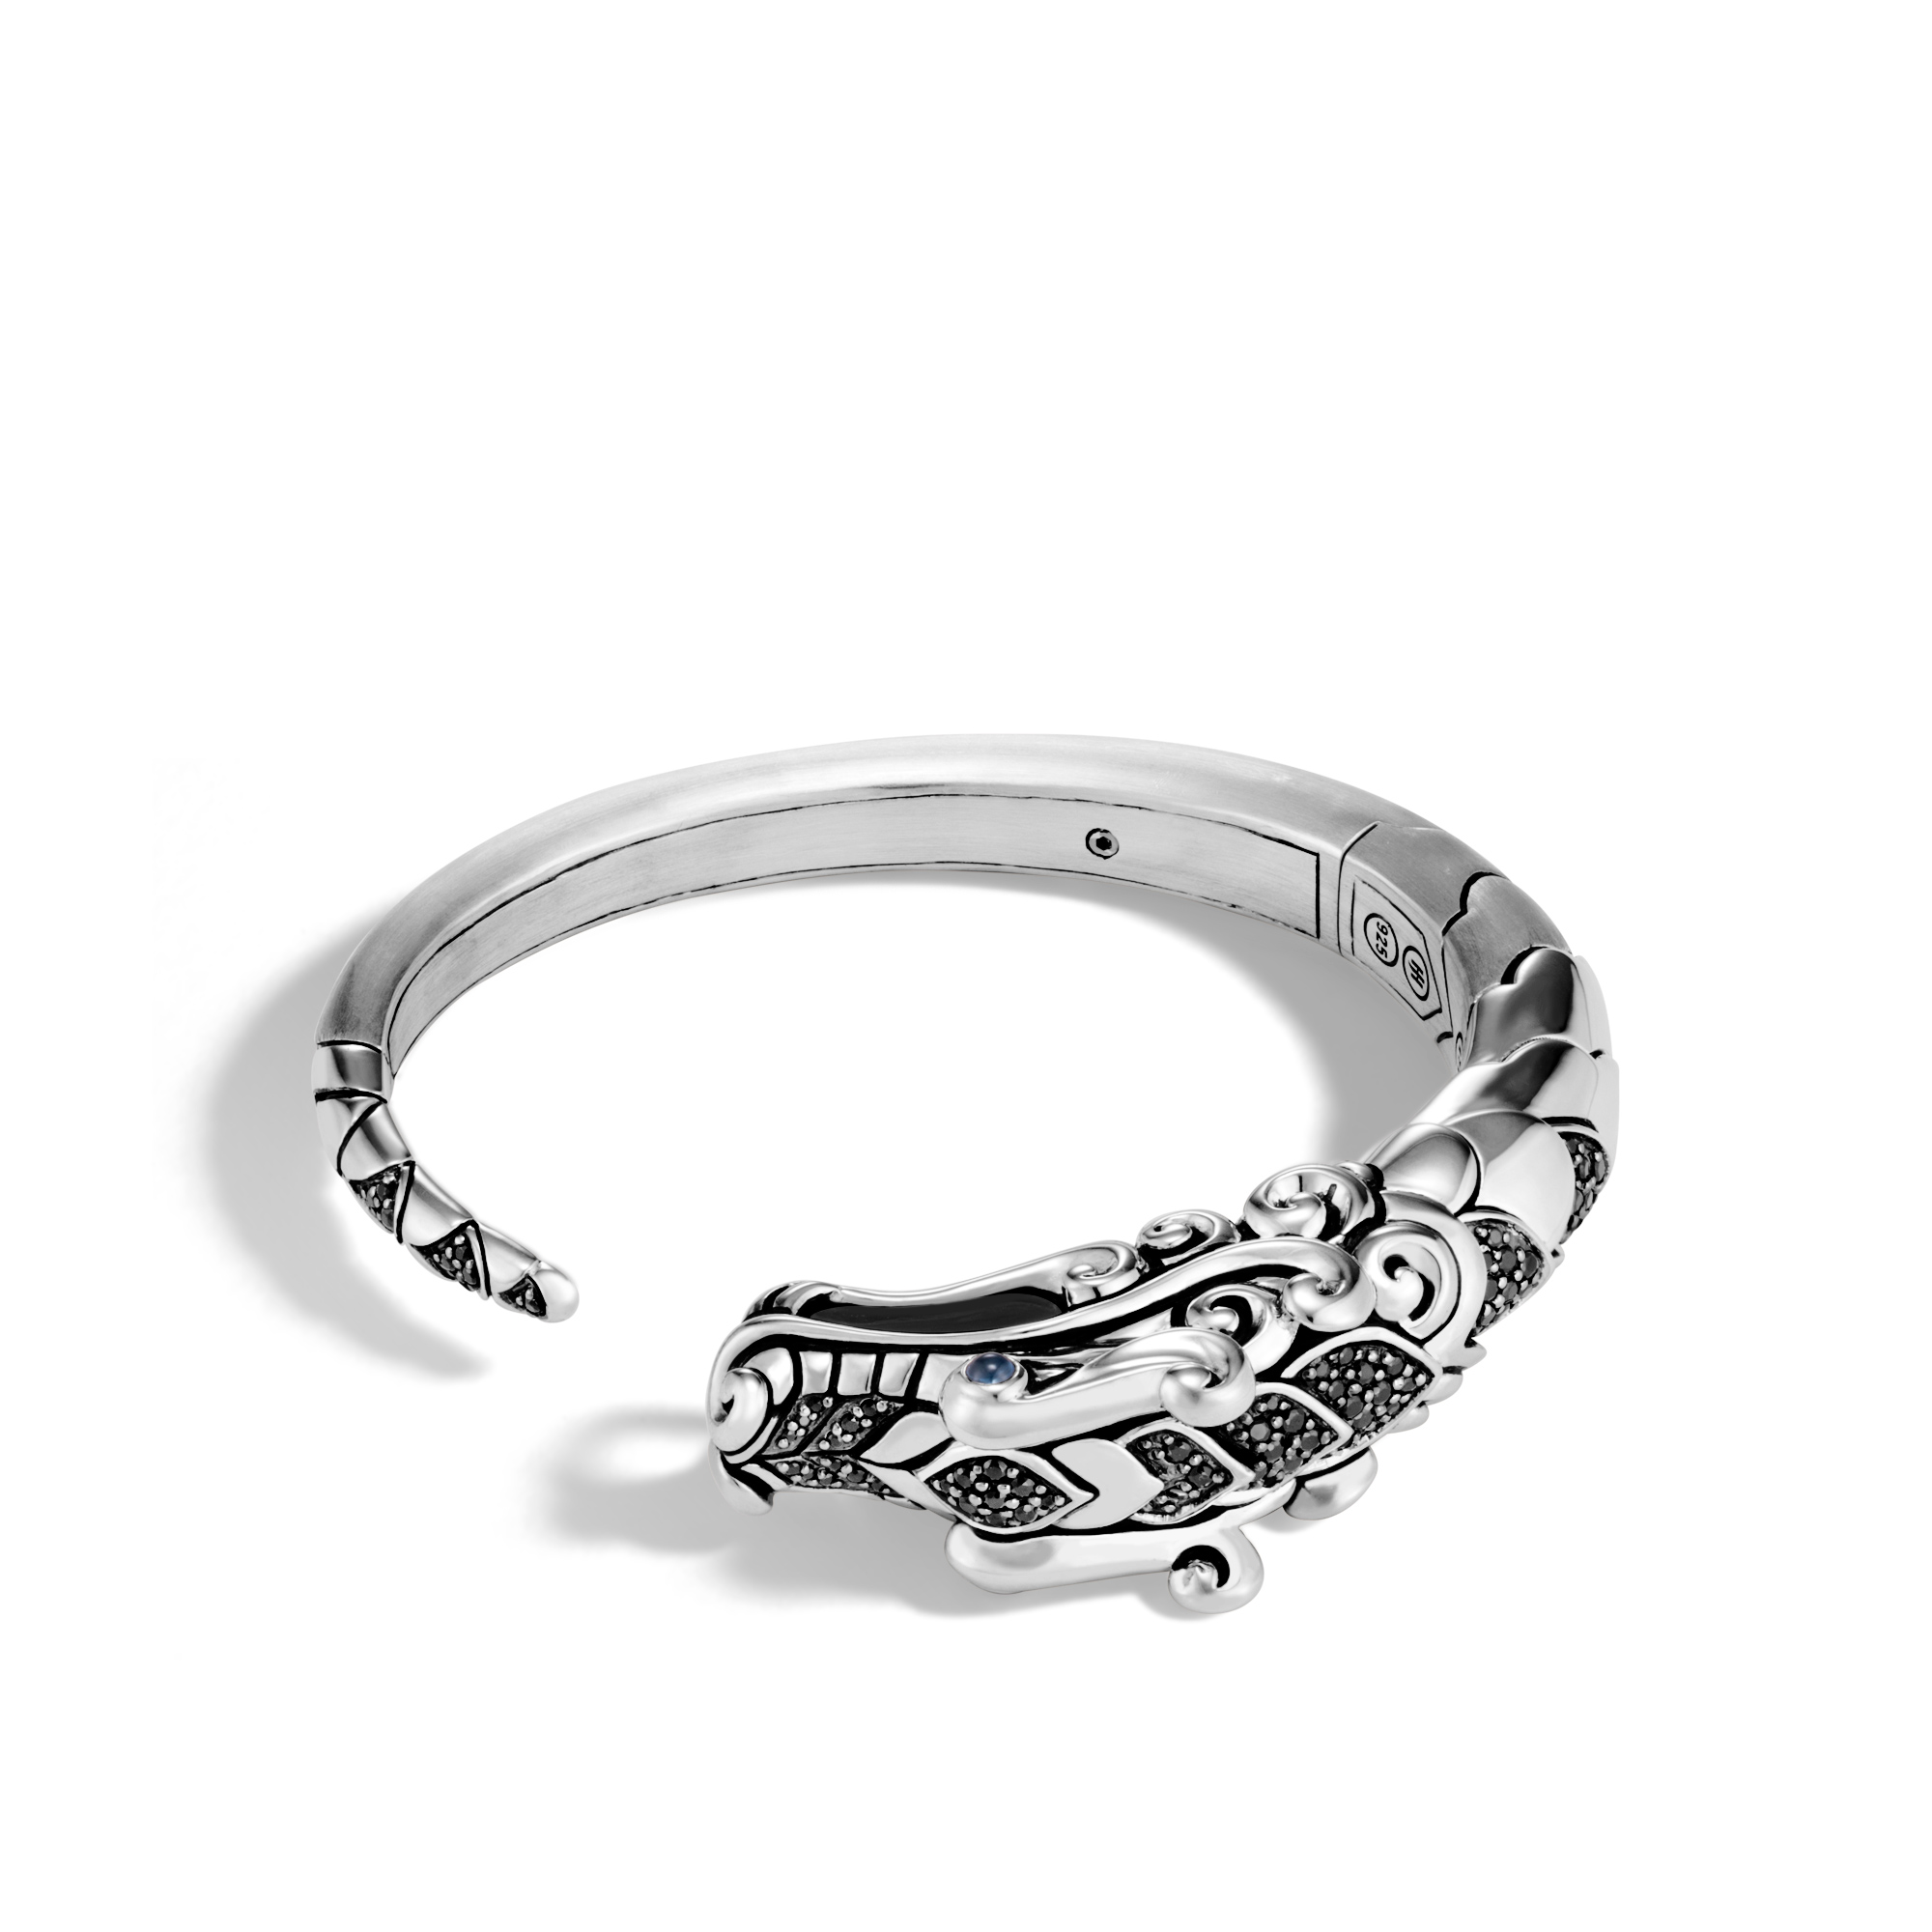 Legends Naga Kick Cuff in Brushed Silver with Gemstone, Black Spinel, large